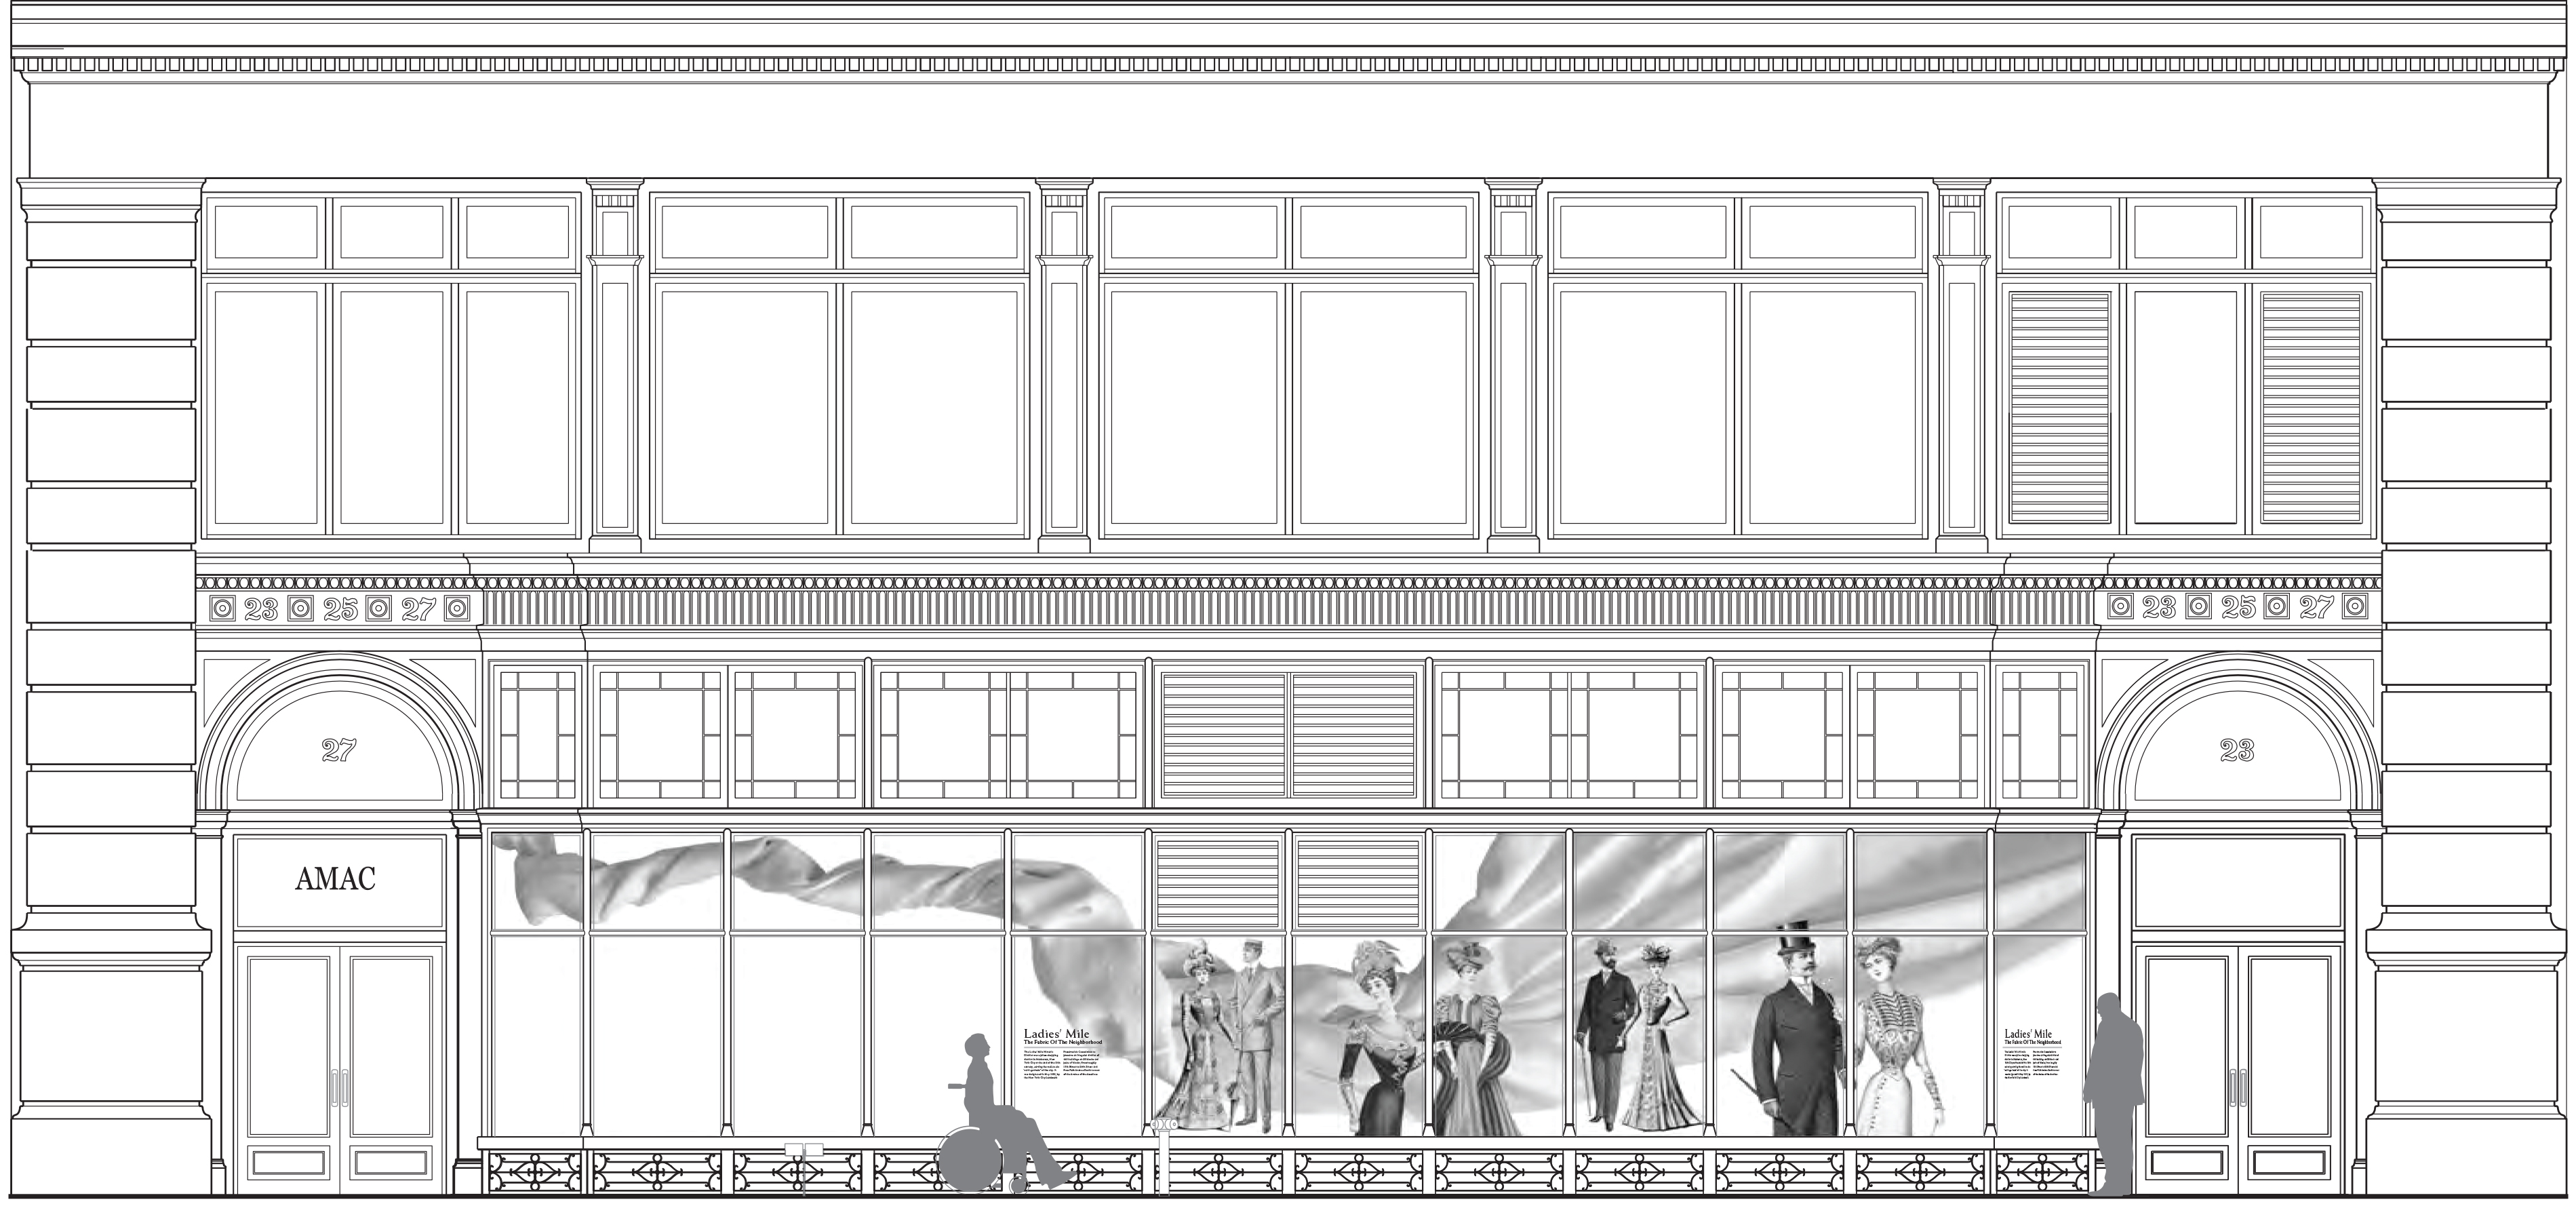 Proposed graphic at 23-27 West 17th Street